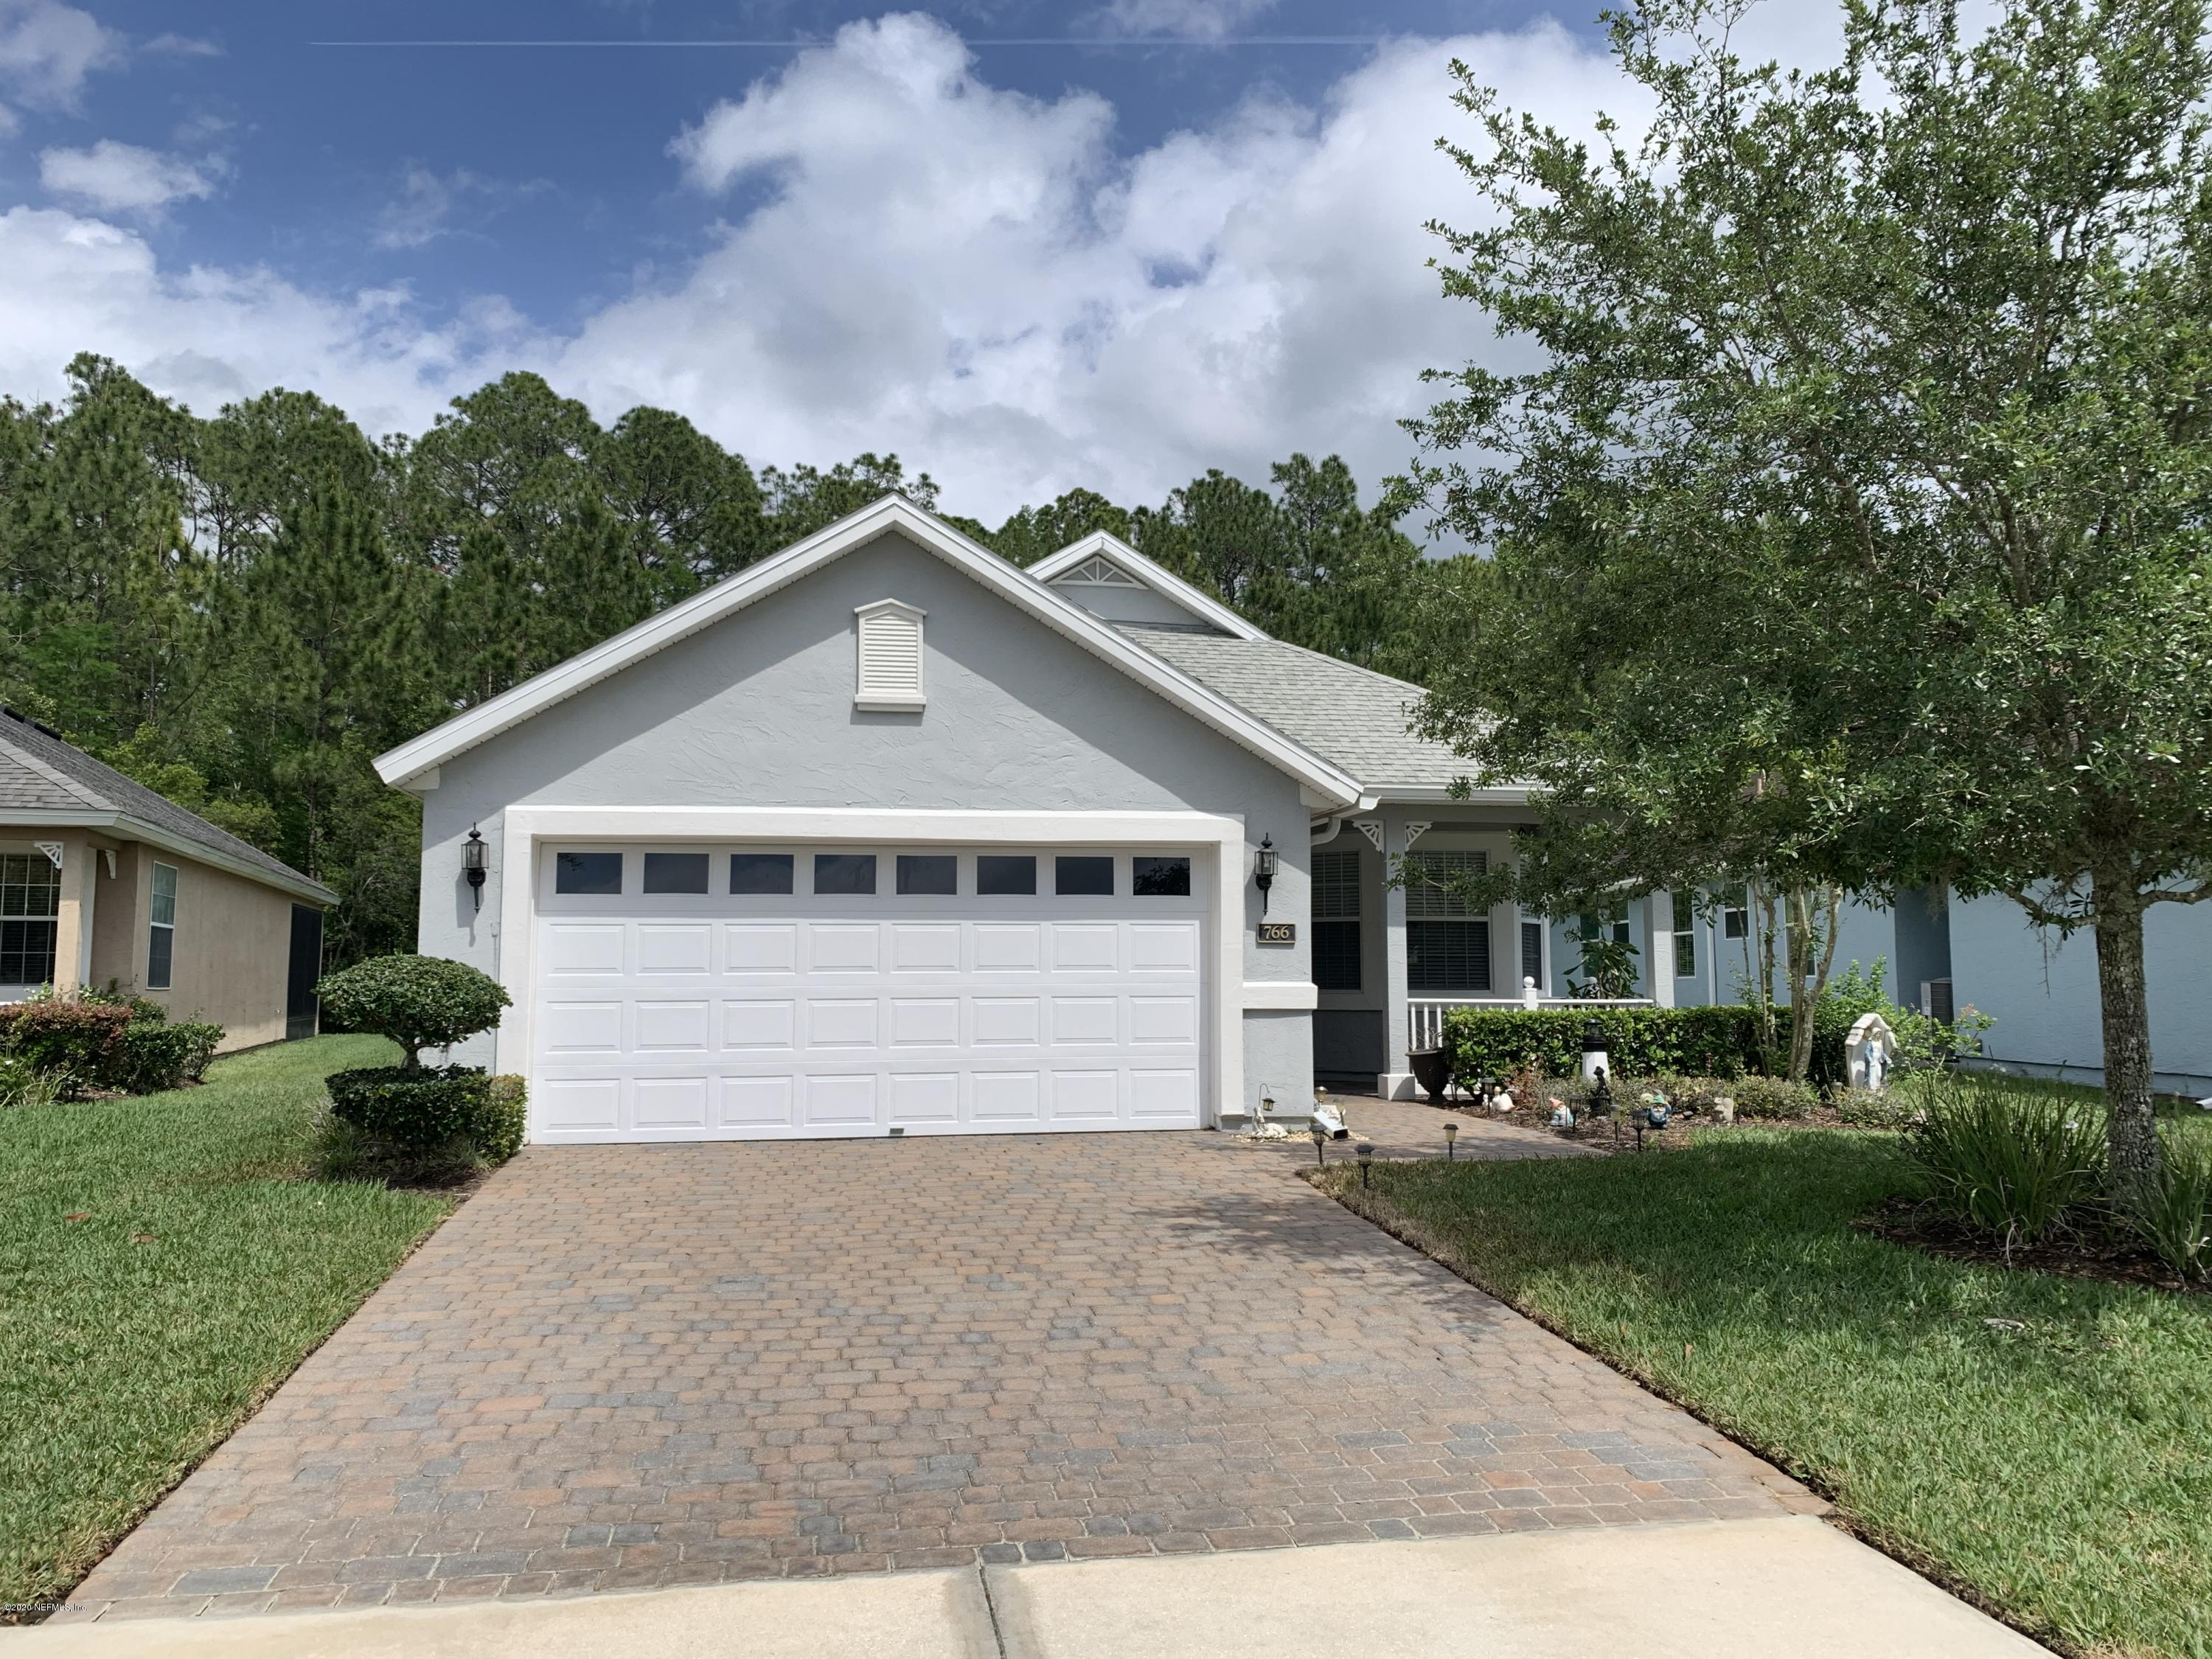 766 COPPERHEAD, ST AUGUSTINE, FLORIDA 32092, 3 Bedrooms Bedrooms, ,2 BathroomsBathrooms,Residential,For sale,COPPERHEAD,1049381